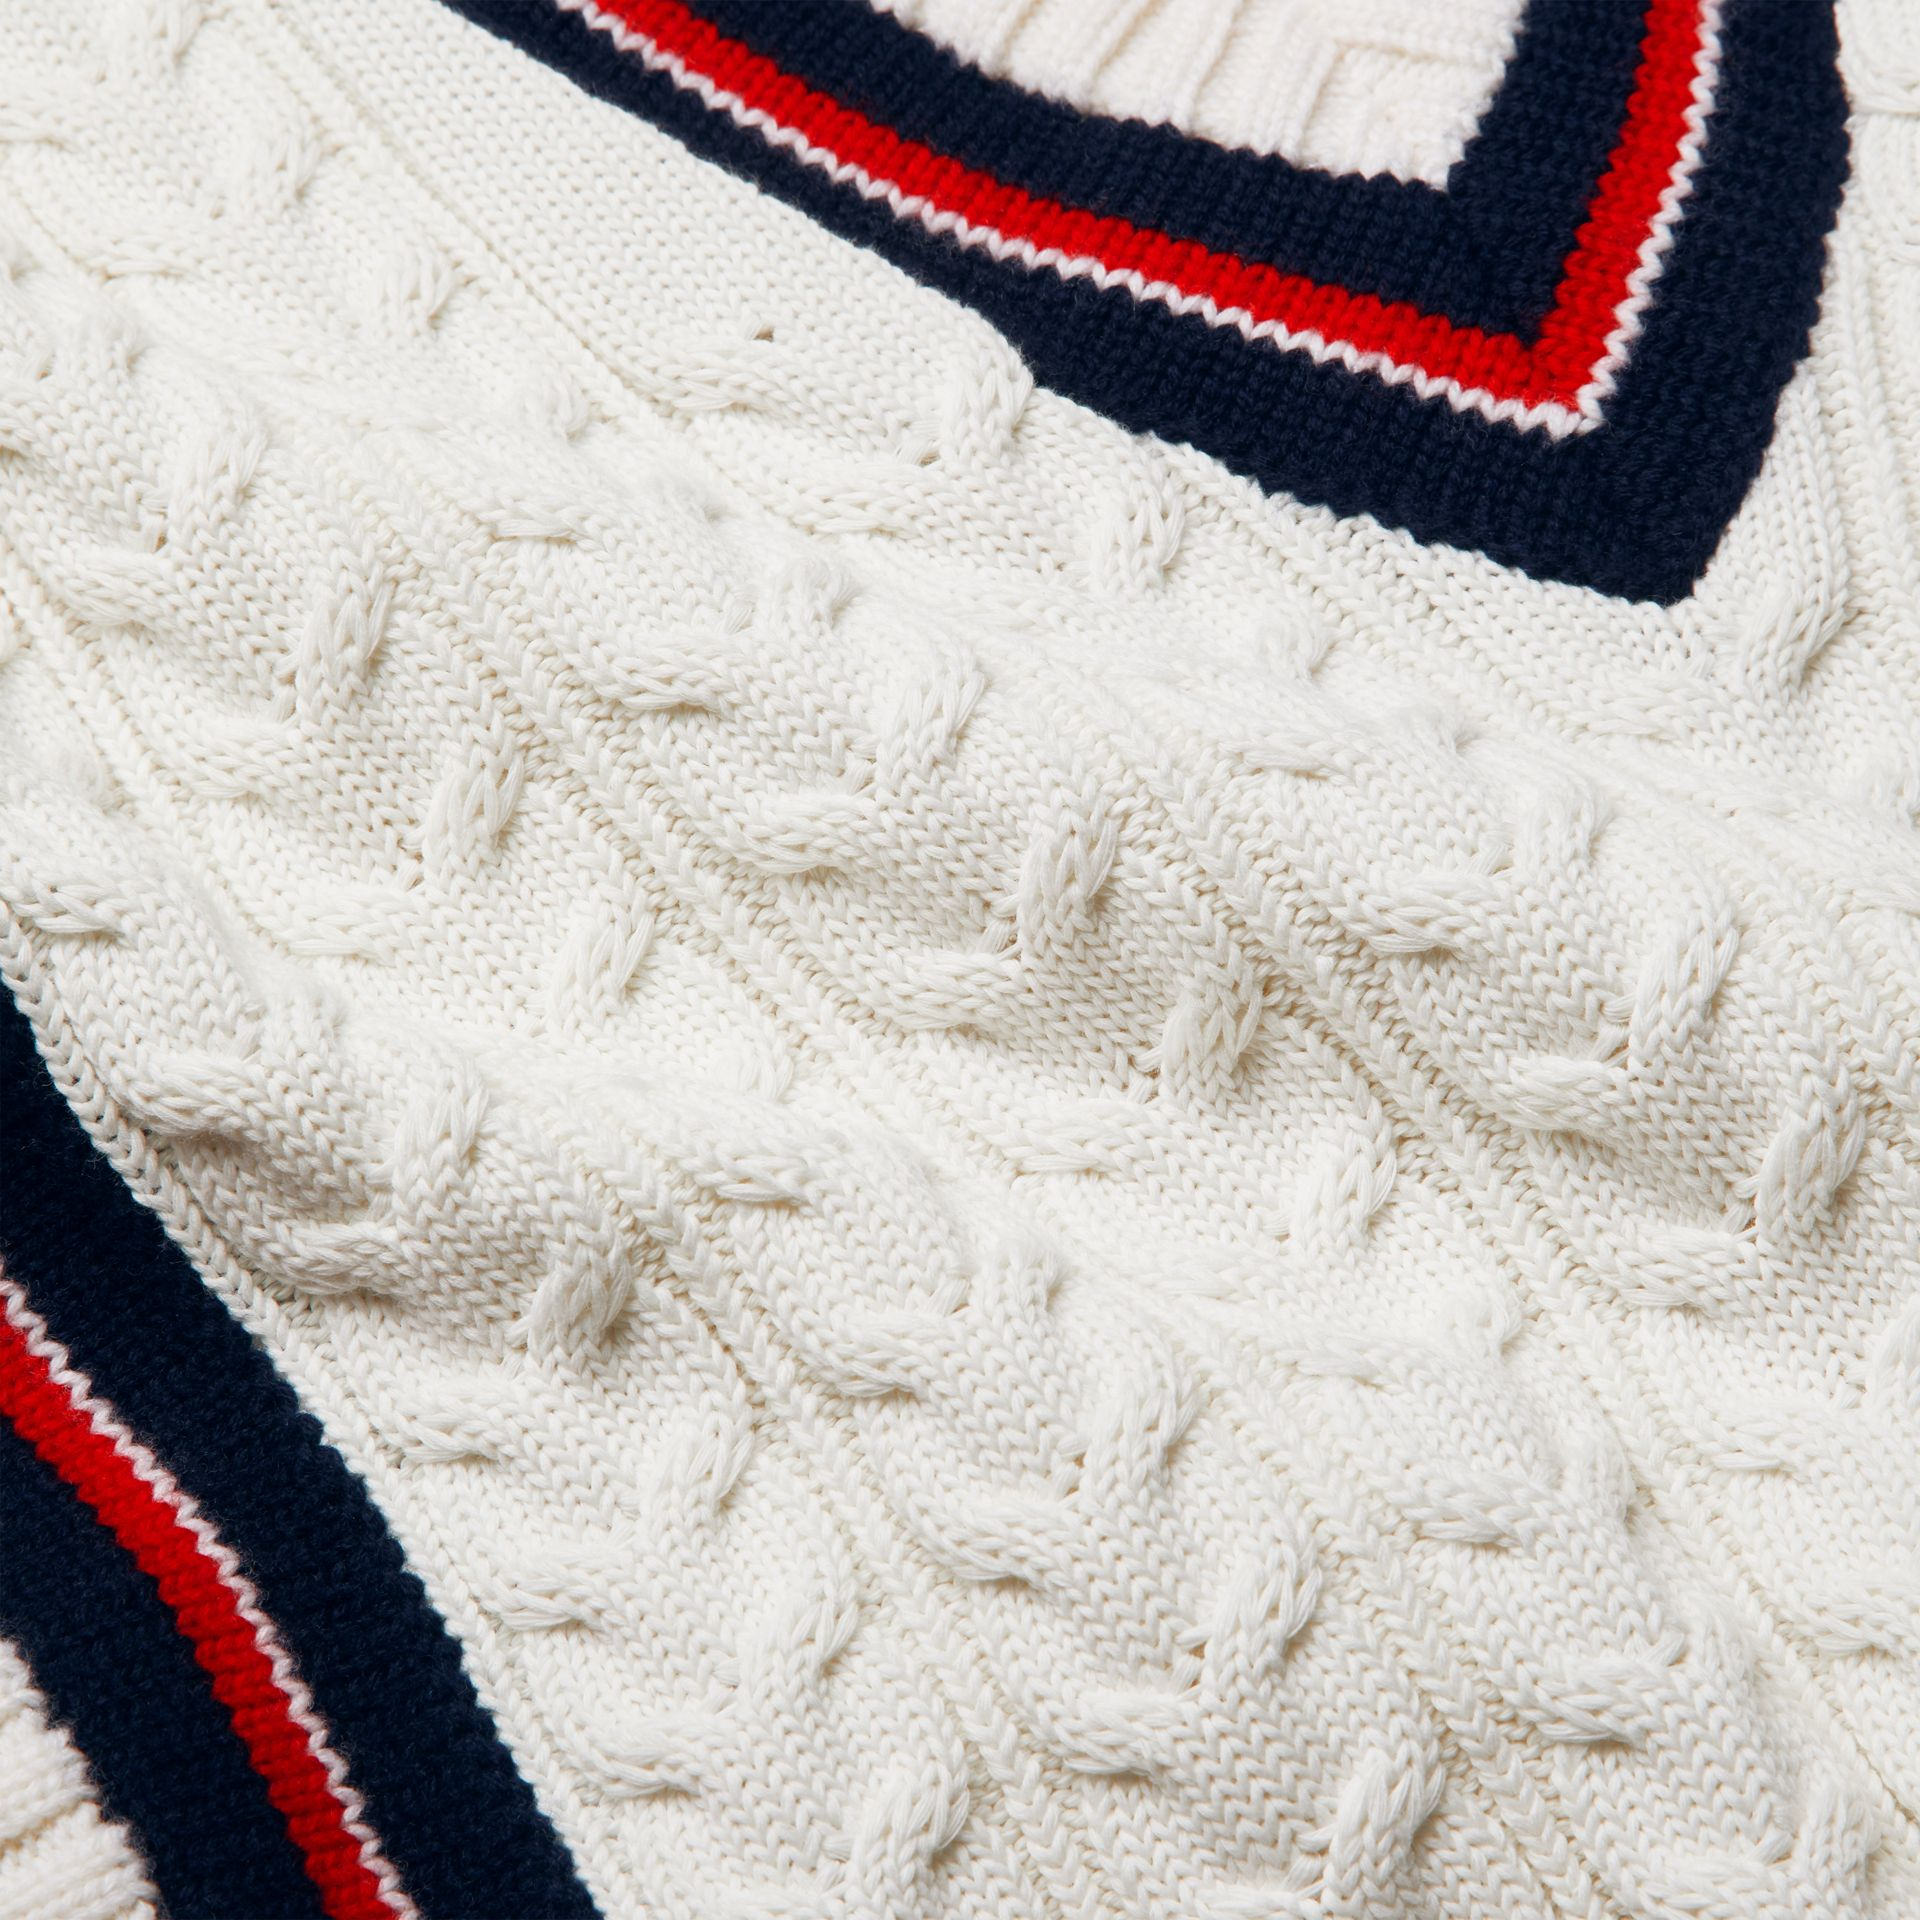 Stripe Detail Cotton and Merino Wool Sweater in White | Burberry United States - gallery image 1